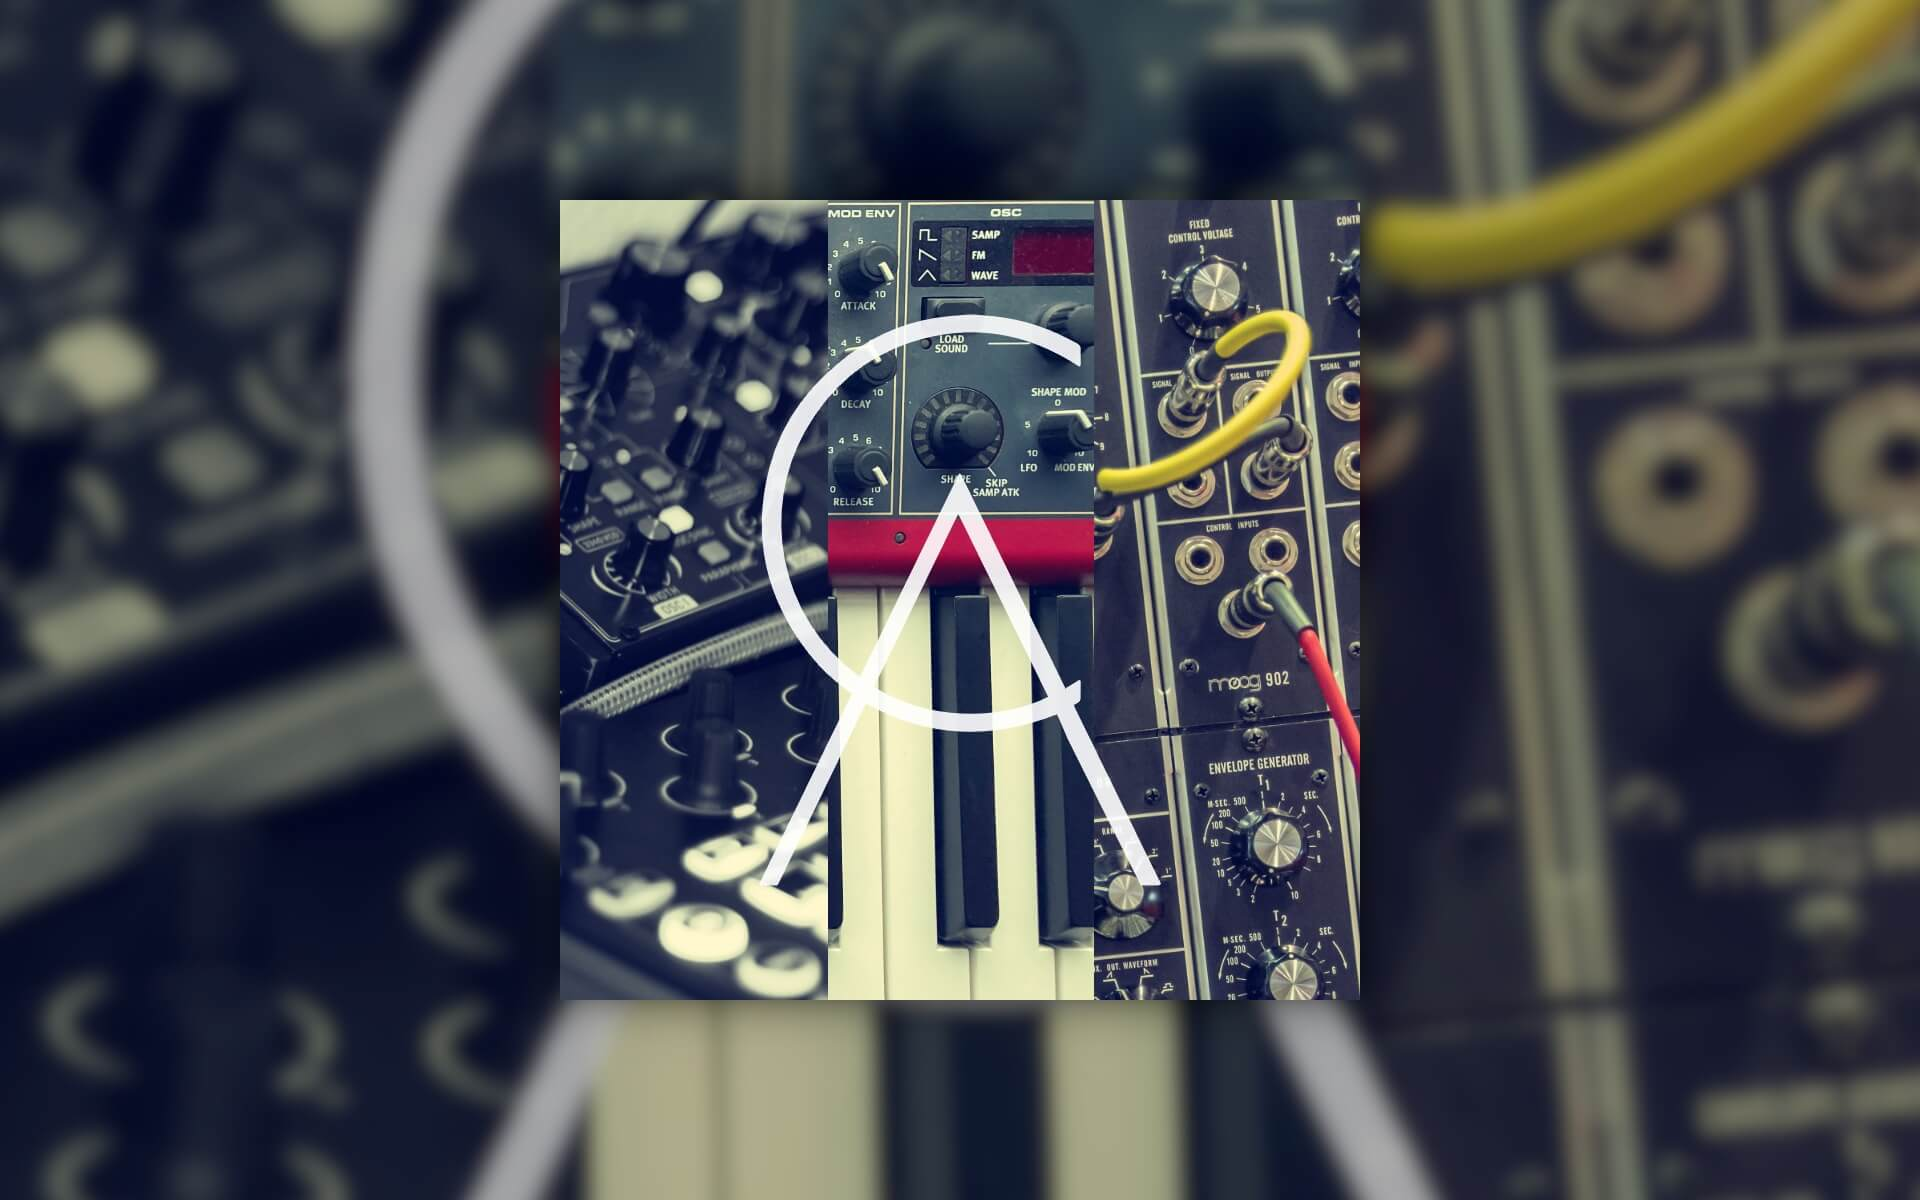 Caelum Audio releases Synth Loops Vol. 2, Flux Mini updated with MIDI triggering